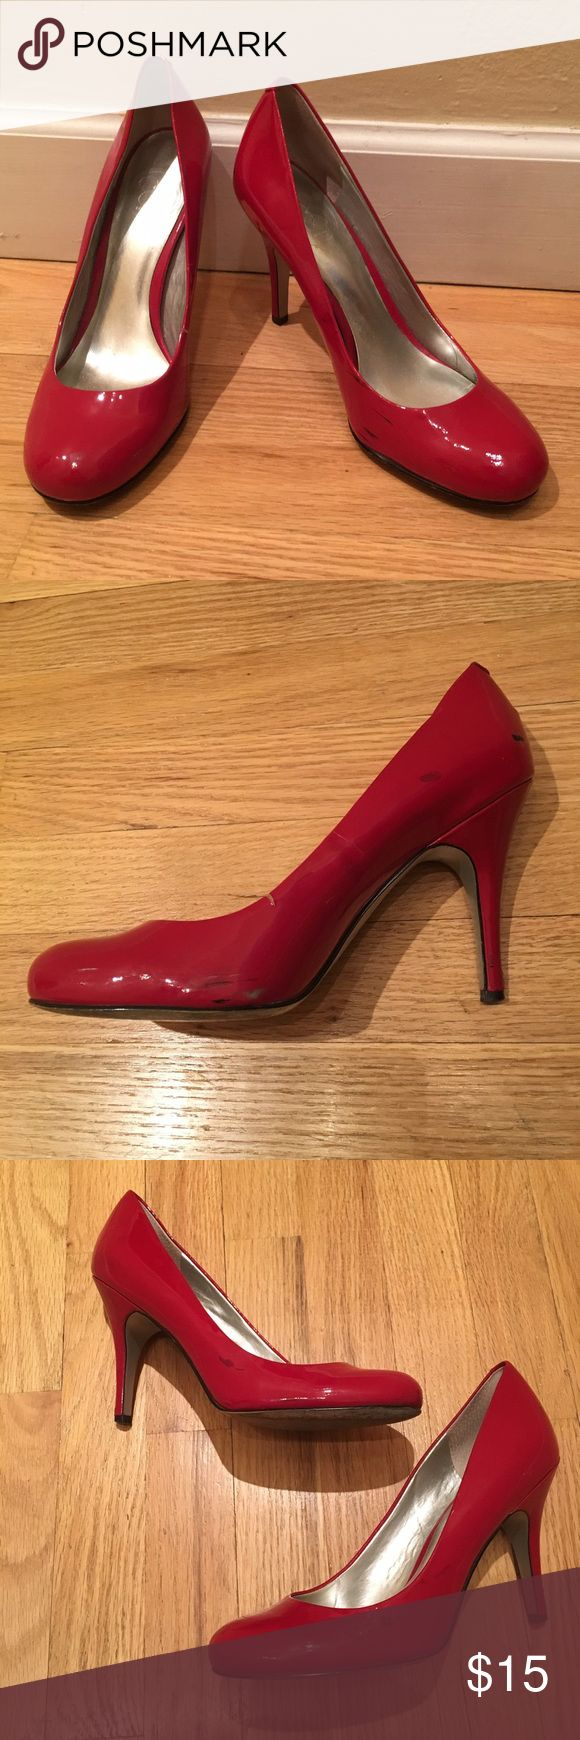 "Jessica Simpson red heels Red pumps. Heel height is 4"". There is a small tear on one shoe and both have black marks throughout from wear. Some wear on heels as well. Price reflects damage. Offers welcome! Jessica Simpson Shoes Heels"